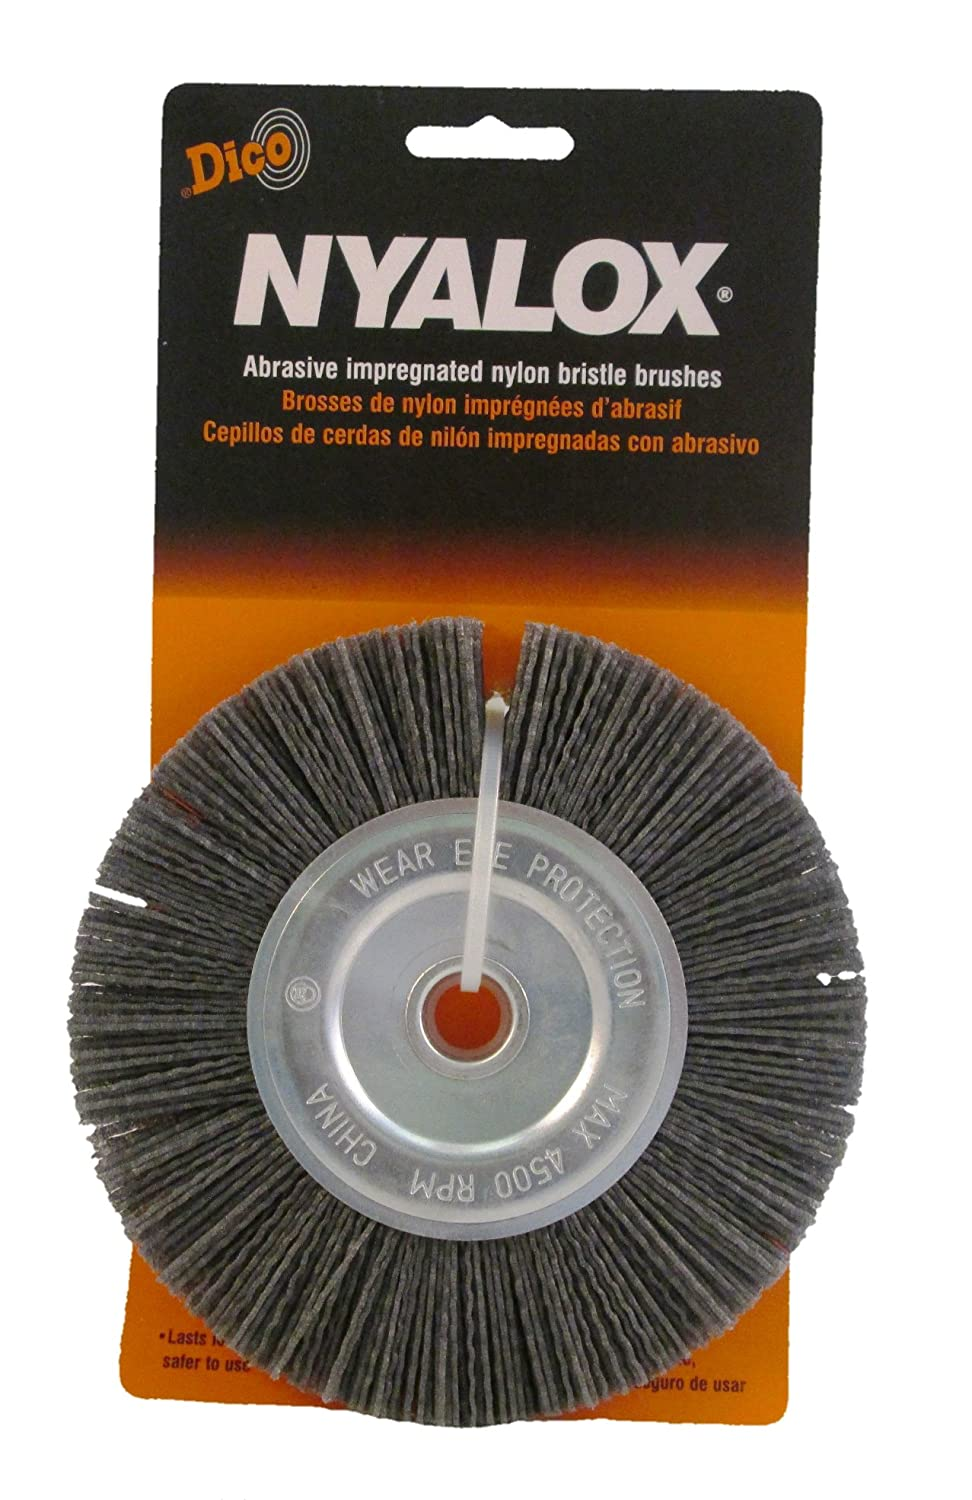 Dico 541 746 6 Nyalox Bench Brush 6 Inch Grey 80 Grit